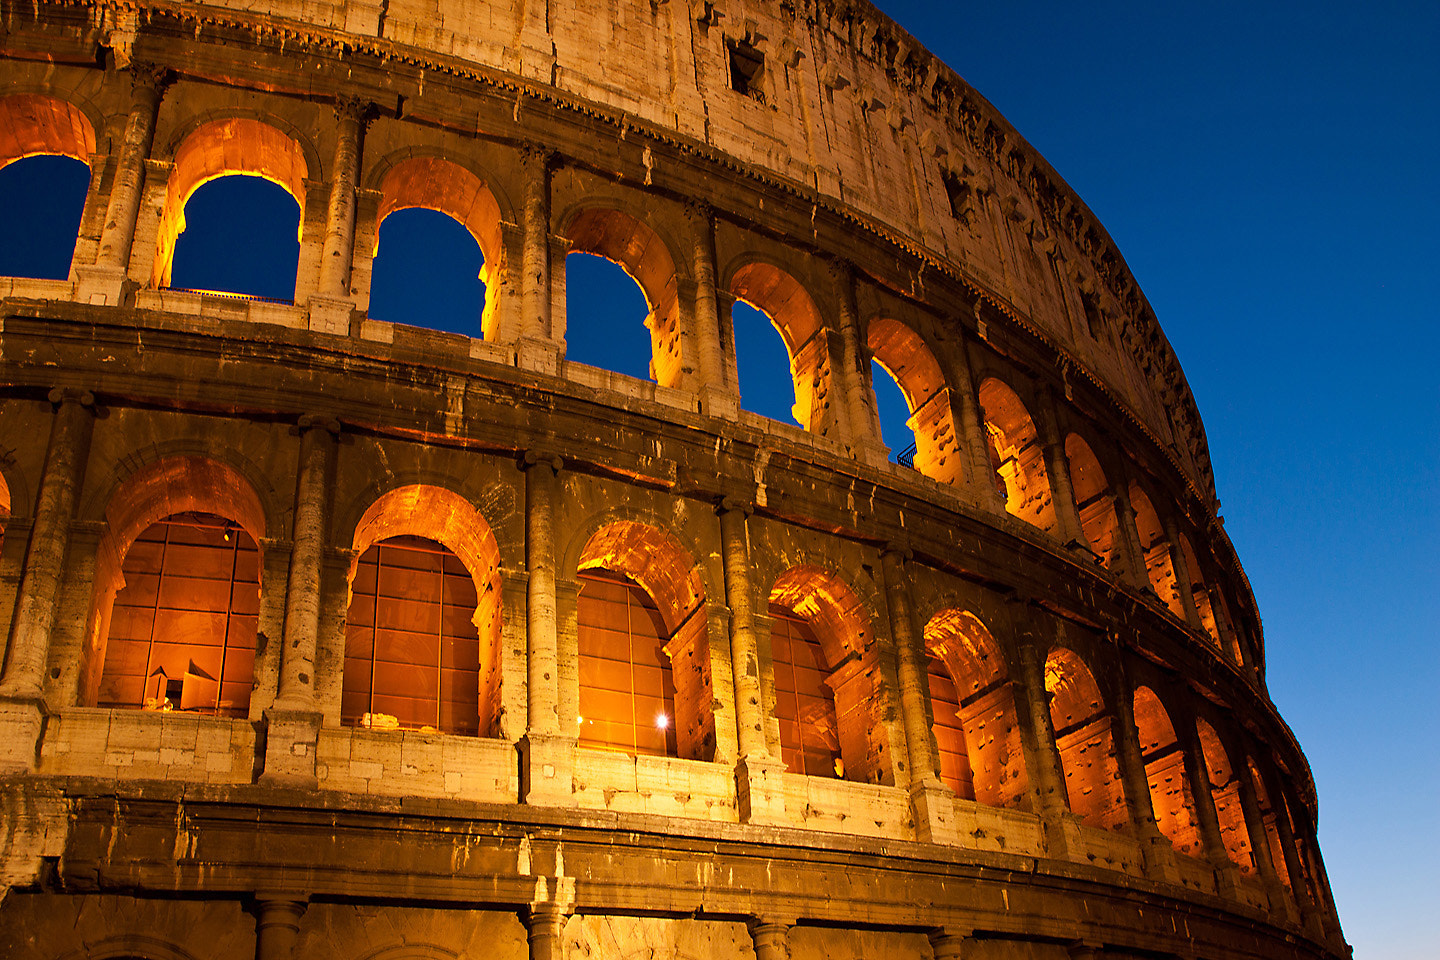 Photograph Colosseum by Mark Greenfield on 500px